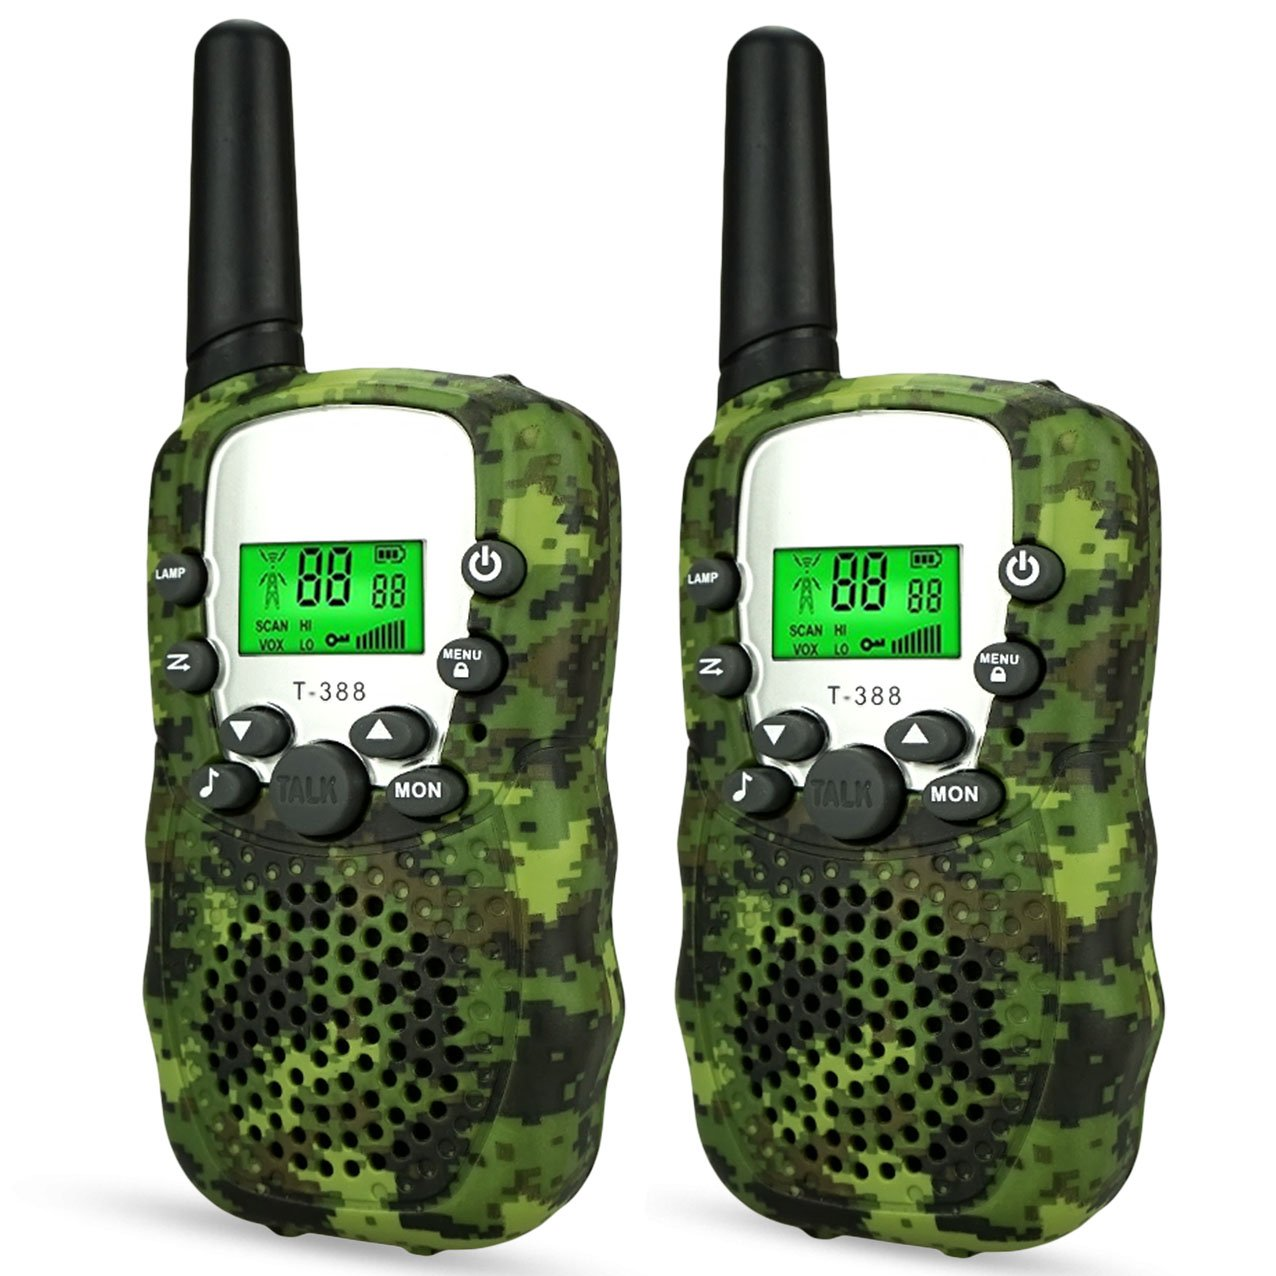 Easony Outdoor Toys For 7 8 Year Old Boys Radio Battery Operated 3 12 Girl Birthday Gifts Girls Green ESUSMC01